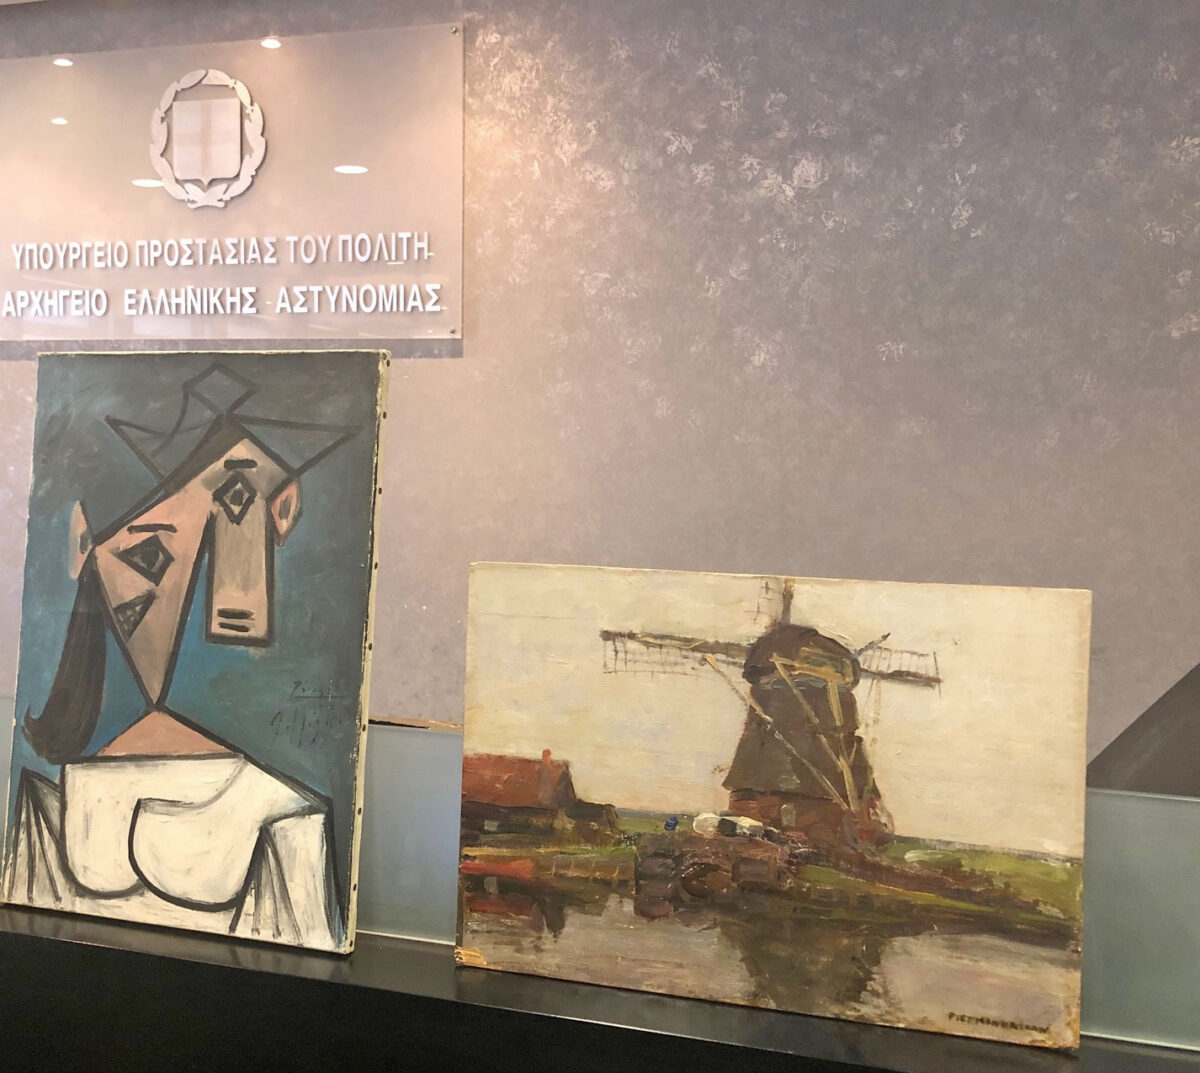 The recovered paintings by Pablo Picasso and Piet Mondrian (photo : MOCAS).